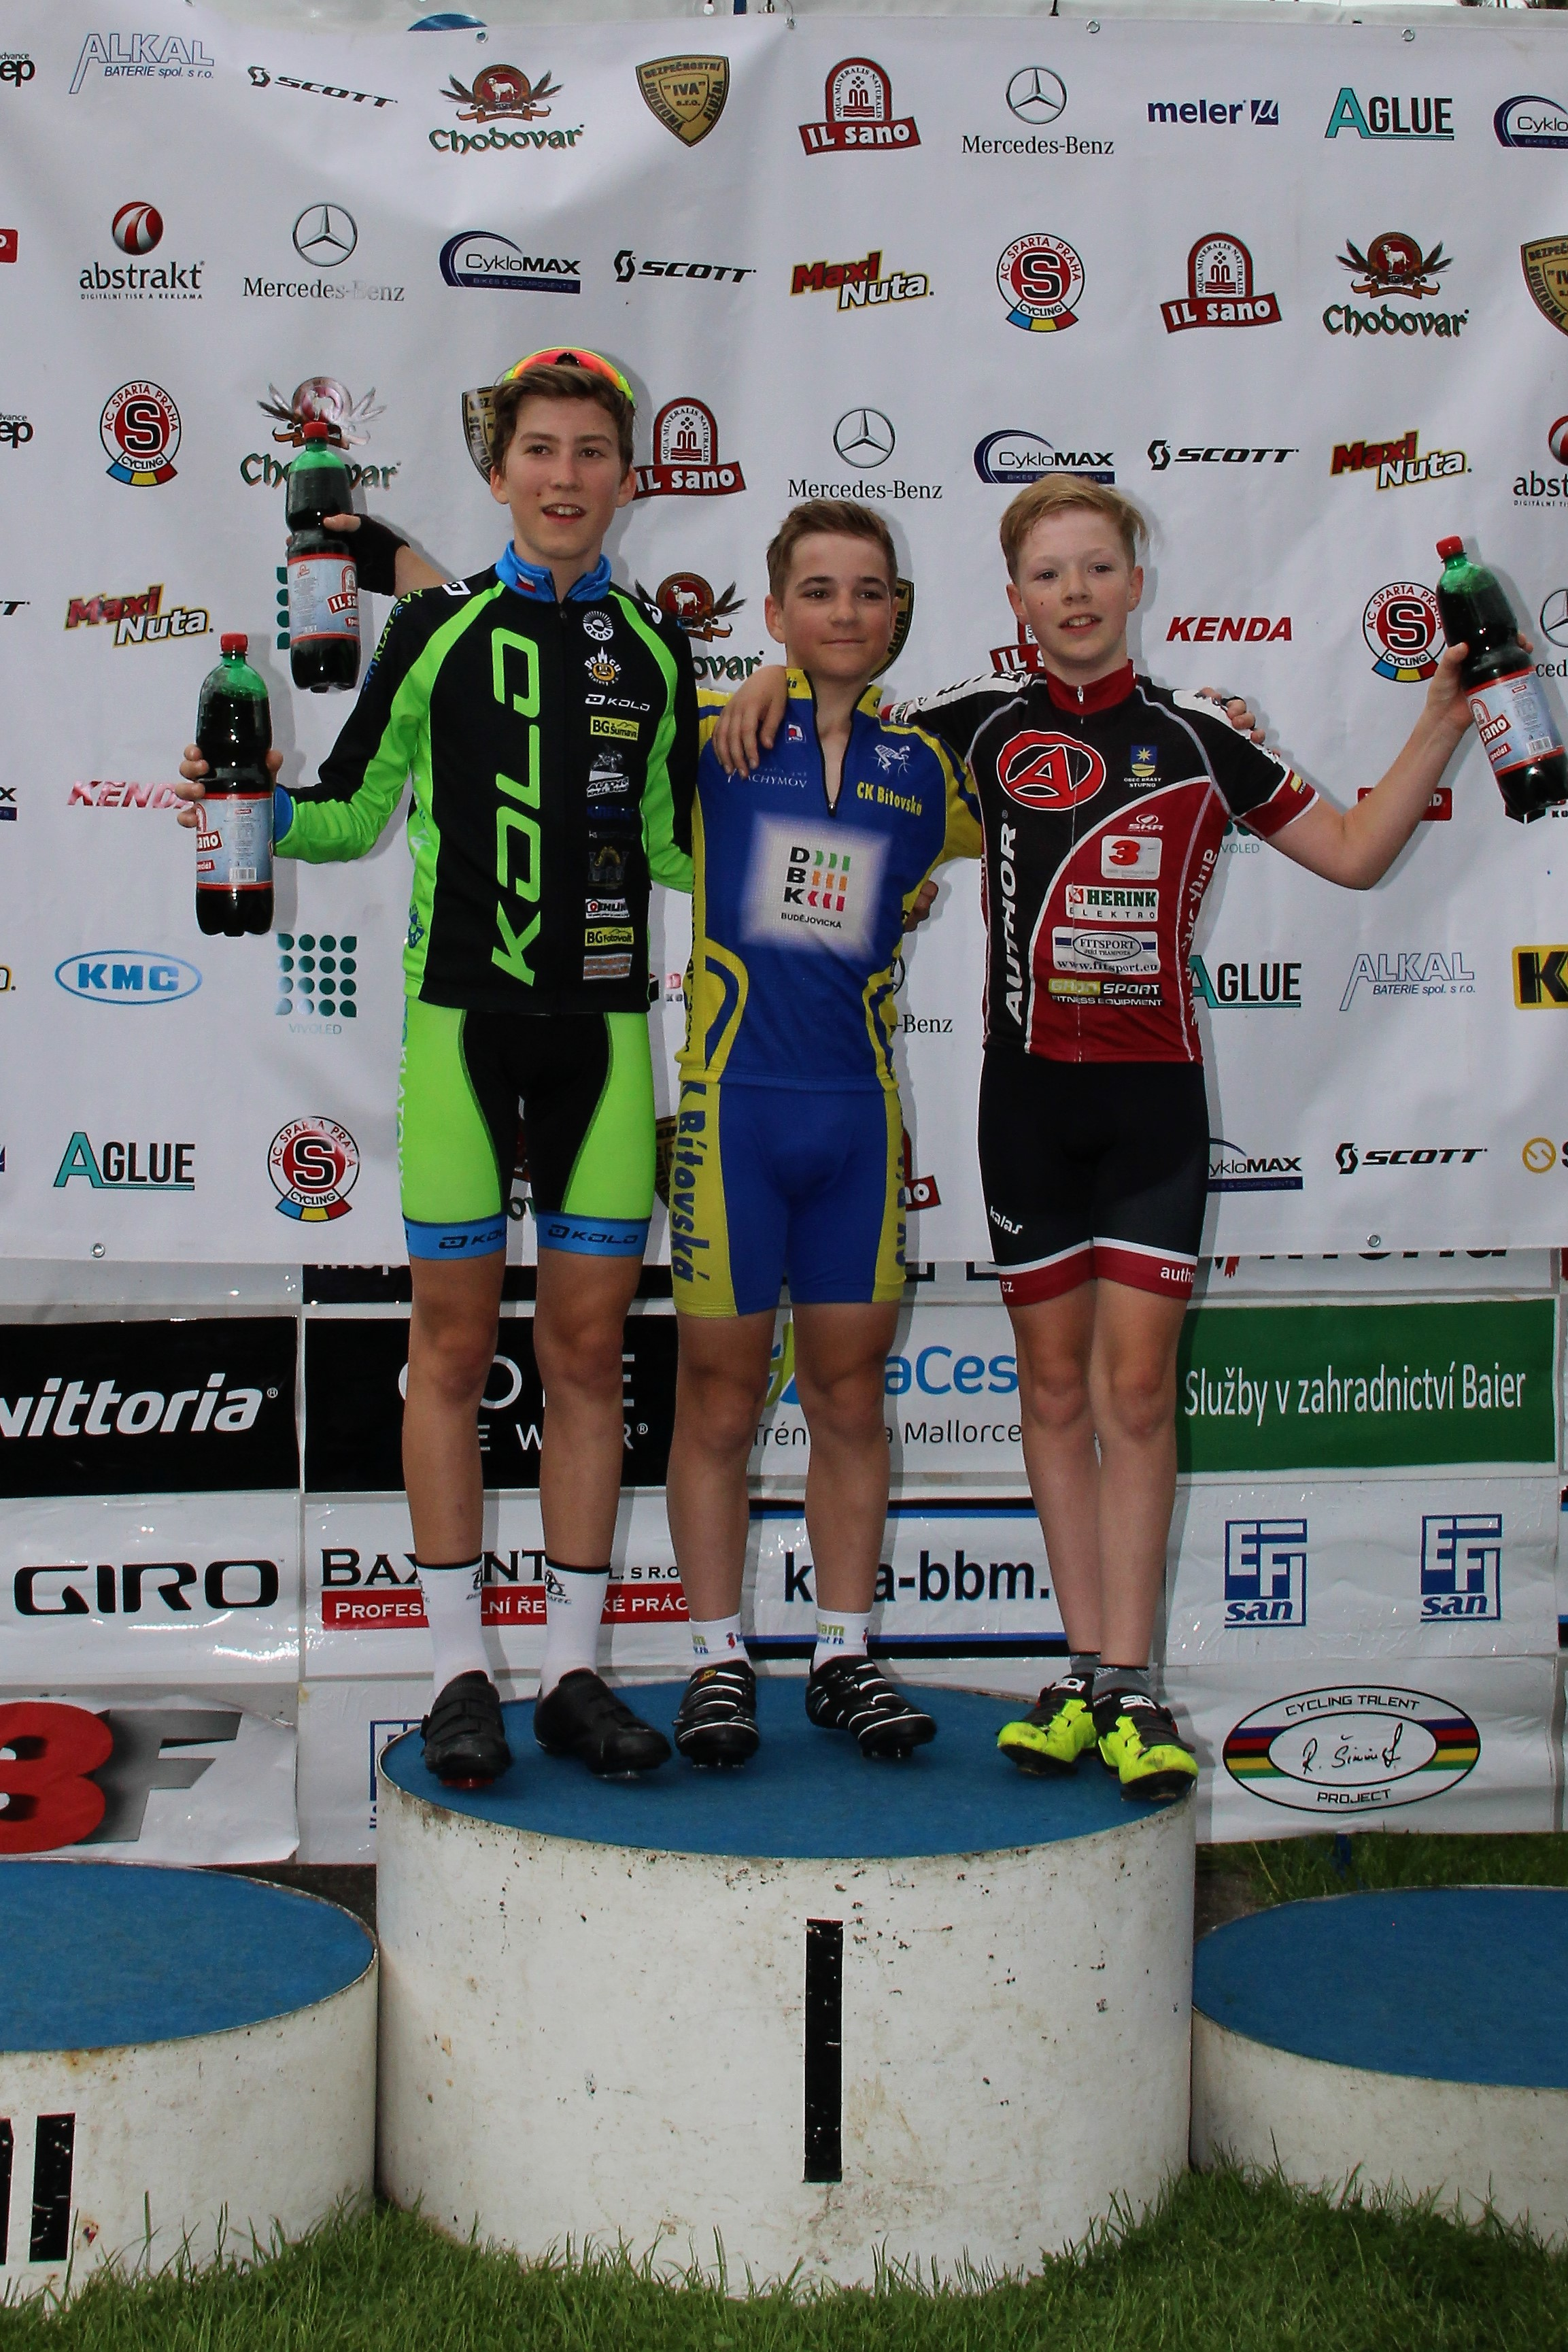 IL-SANO-cup---spartacycling-(41).JPG